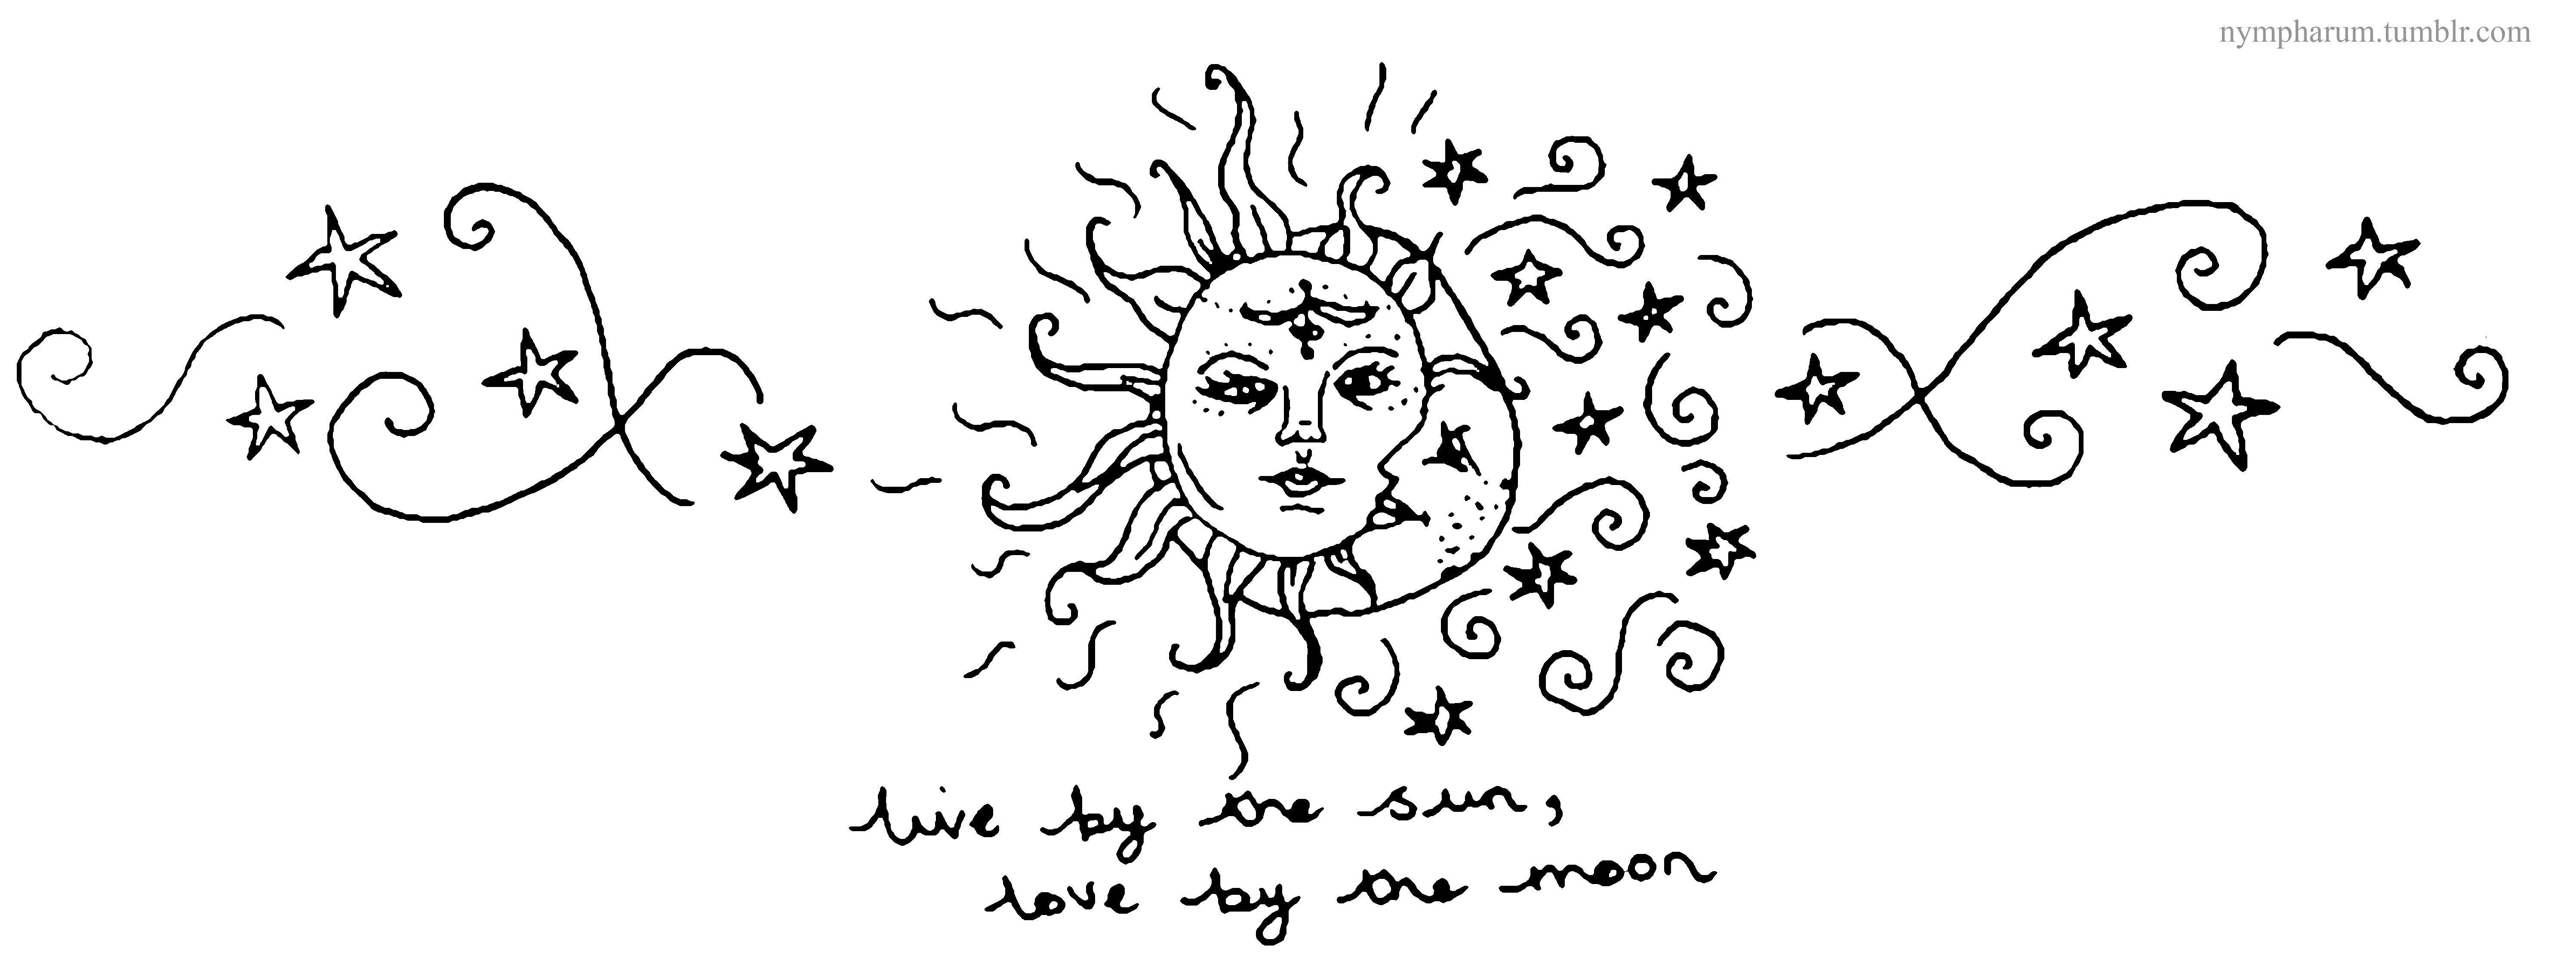 Sun And Moon Quotes Tumblr | www.imgkid.com - The Image ...